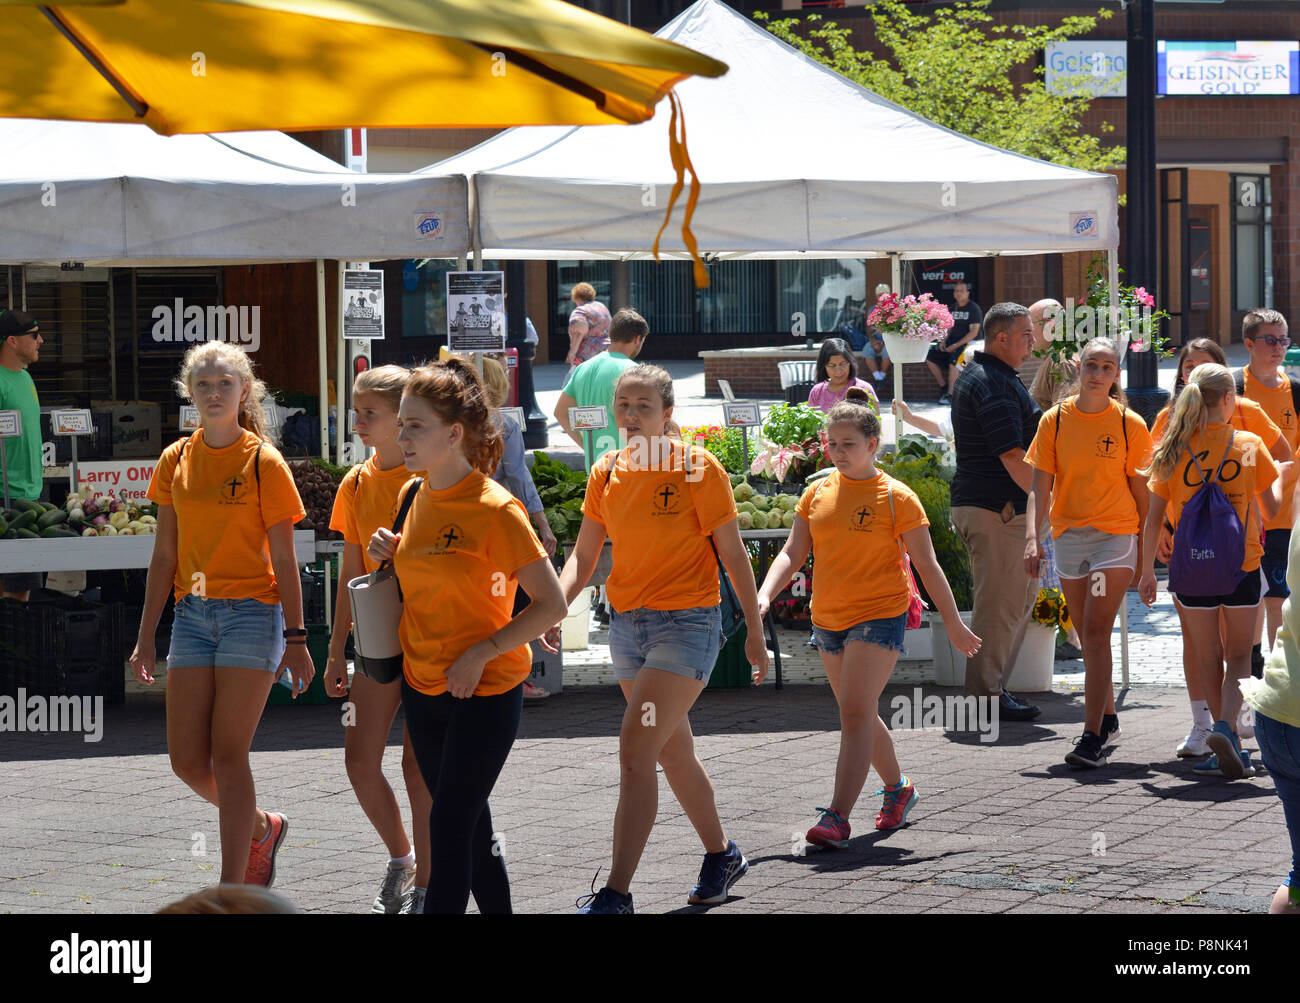 Group from Saint Jude Church Mountaintop,Week Of Service & Hope at Wilkes Barre PA's.farmers market on the public square in central city July 12 2018 Stock Photo